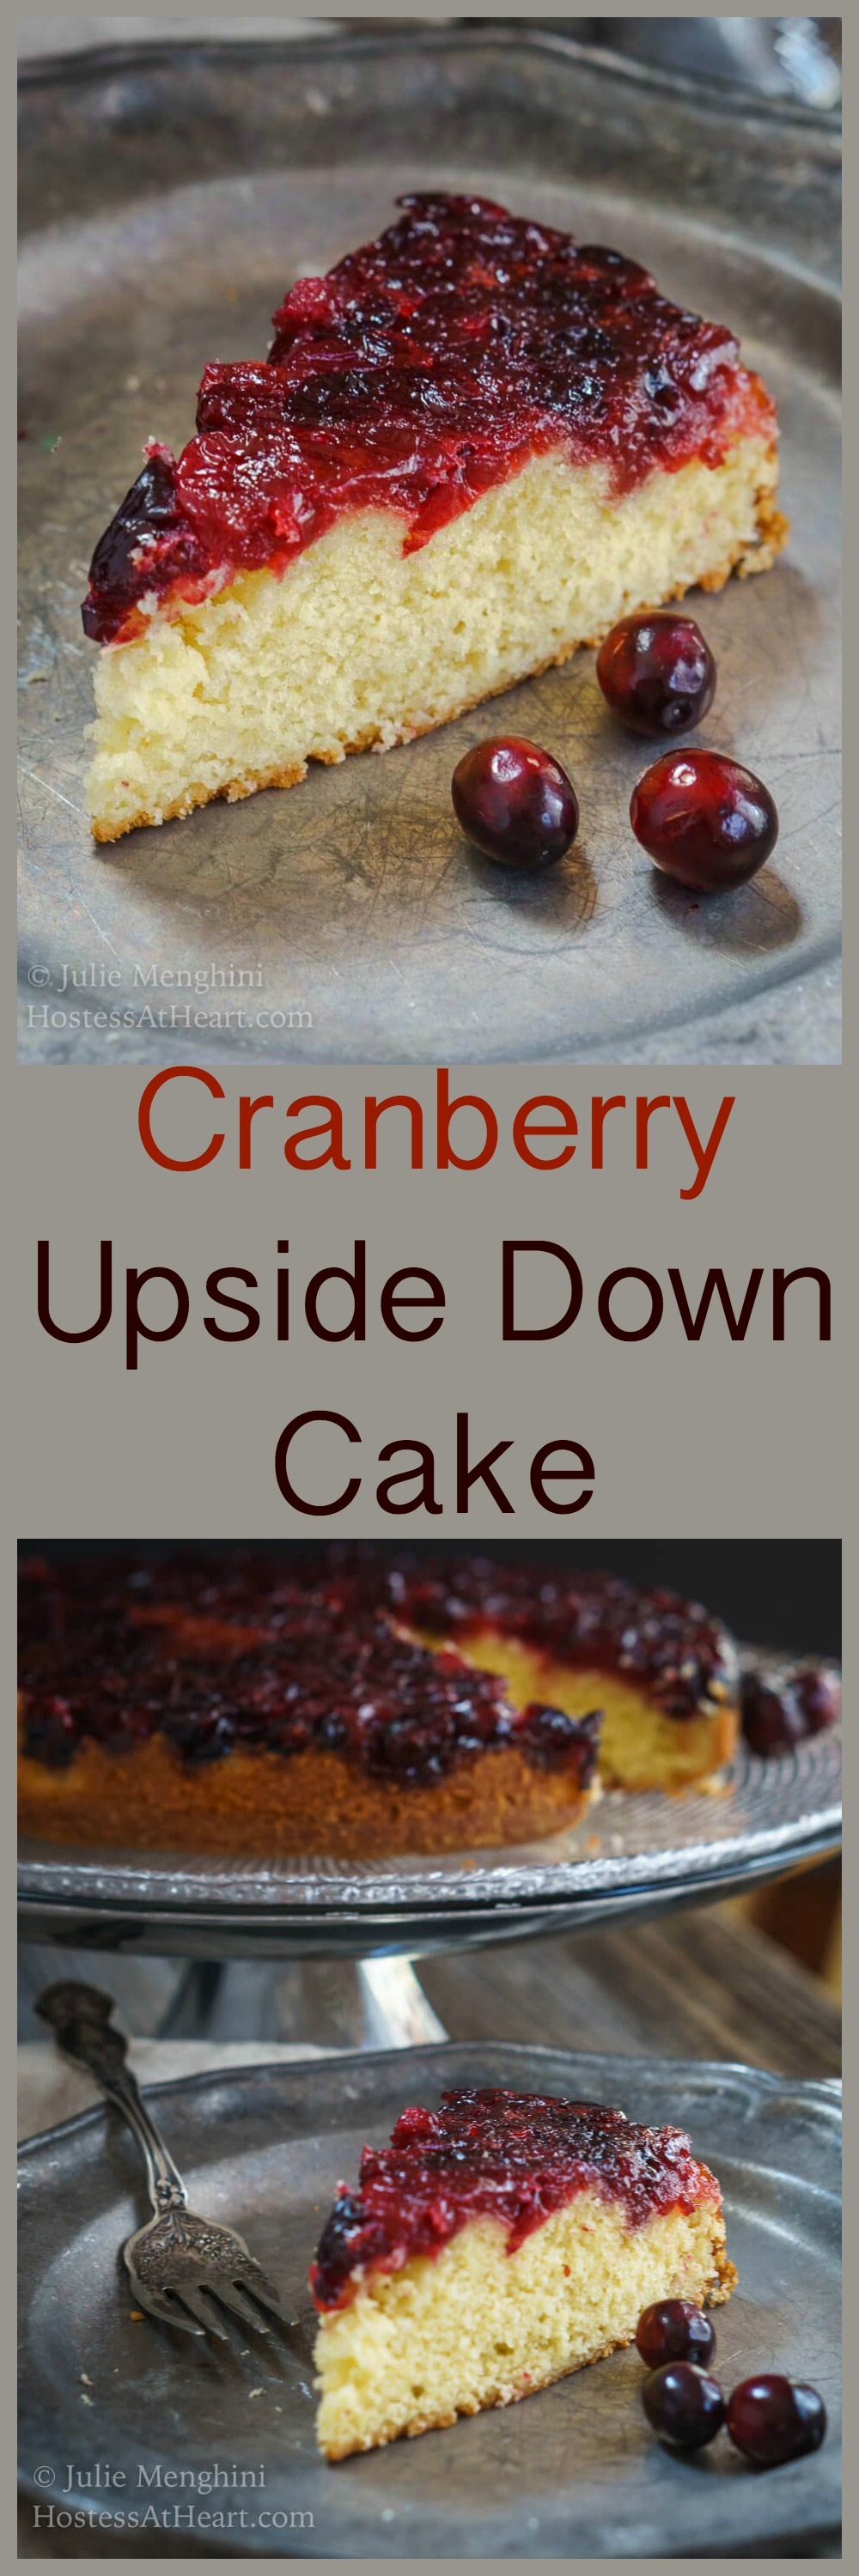 Cranberry Upside-Down Cake is soft and tender. The cake tastes like sweet cream which is a great contrast to the tartness of the cranberries. #CranberryWeek #recipe #baked